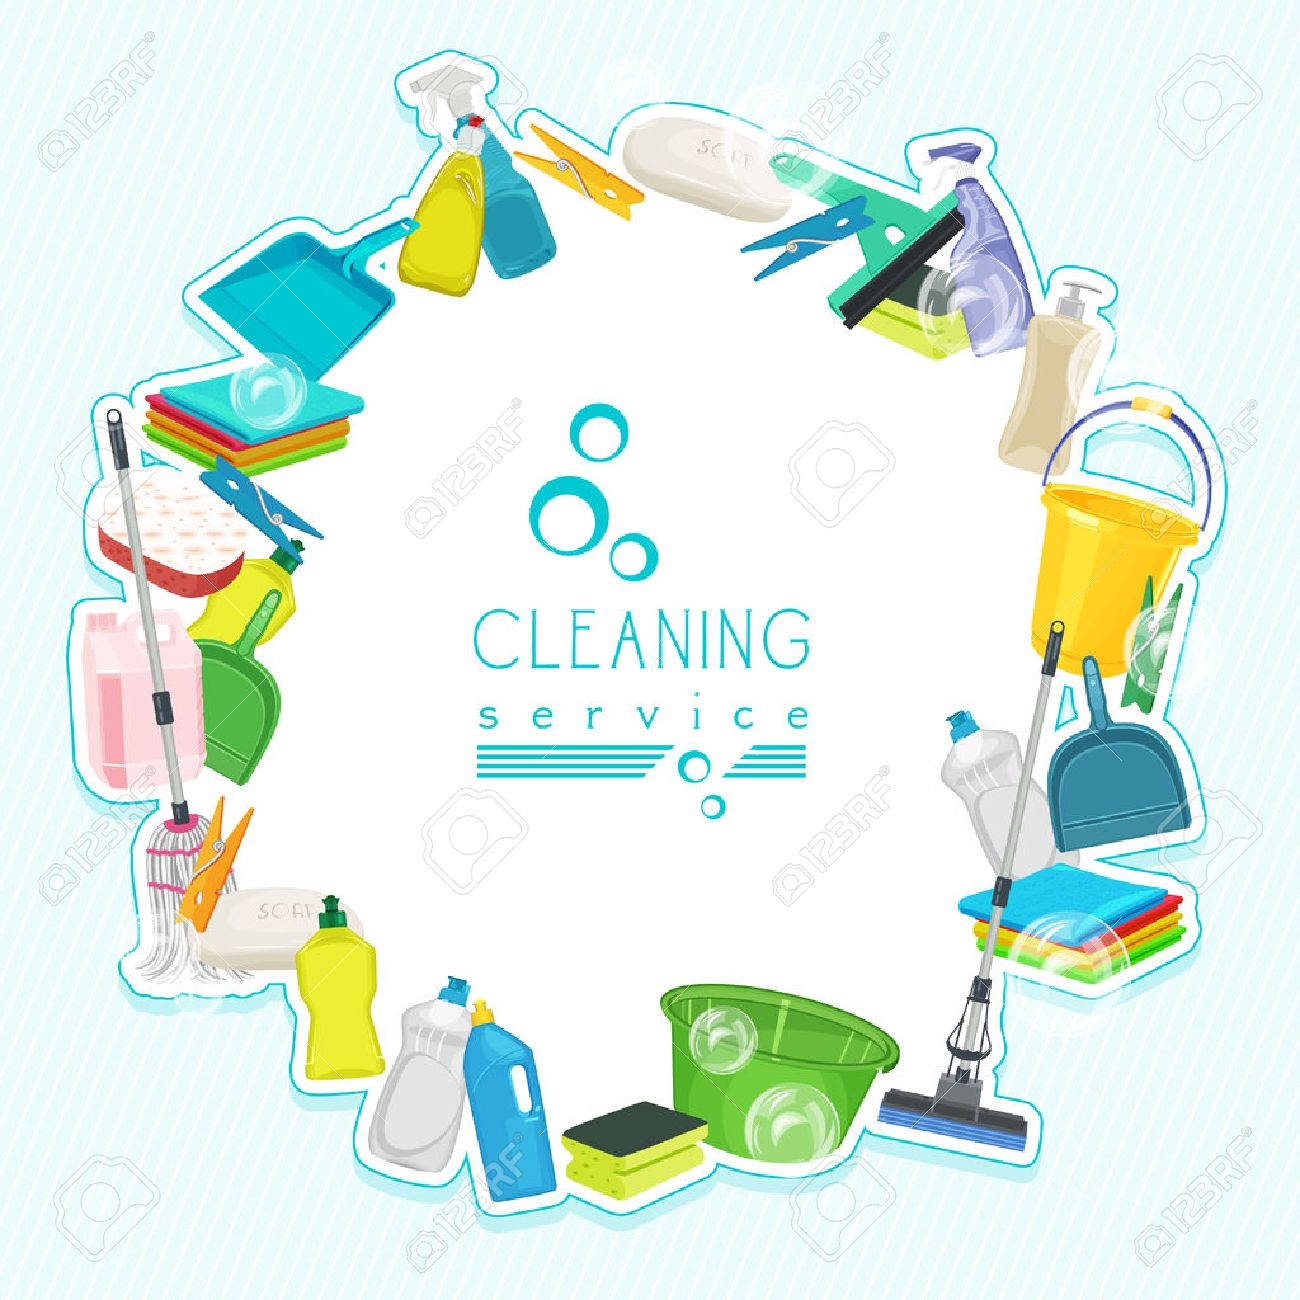 Sparkling clean kitchen clipart - House Cleaning Poster Design For Cleaning Service And Cleaning Supplies Cleaning Kit Icons Illustration